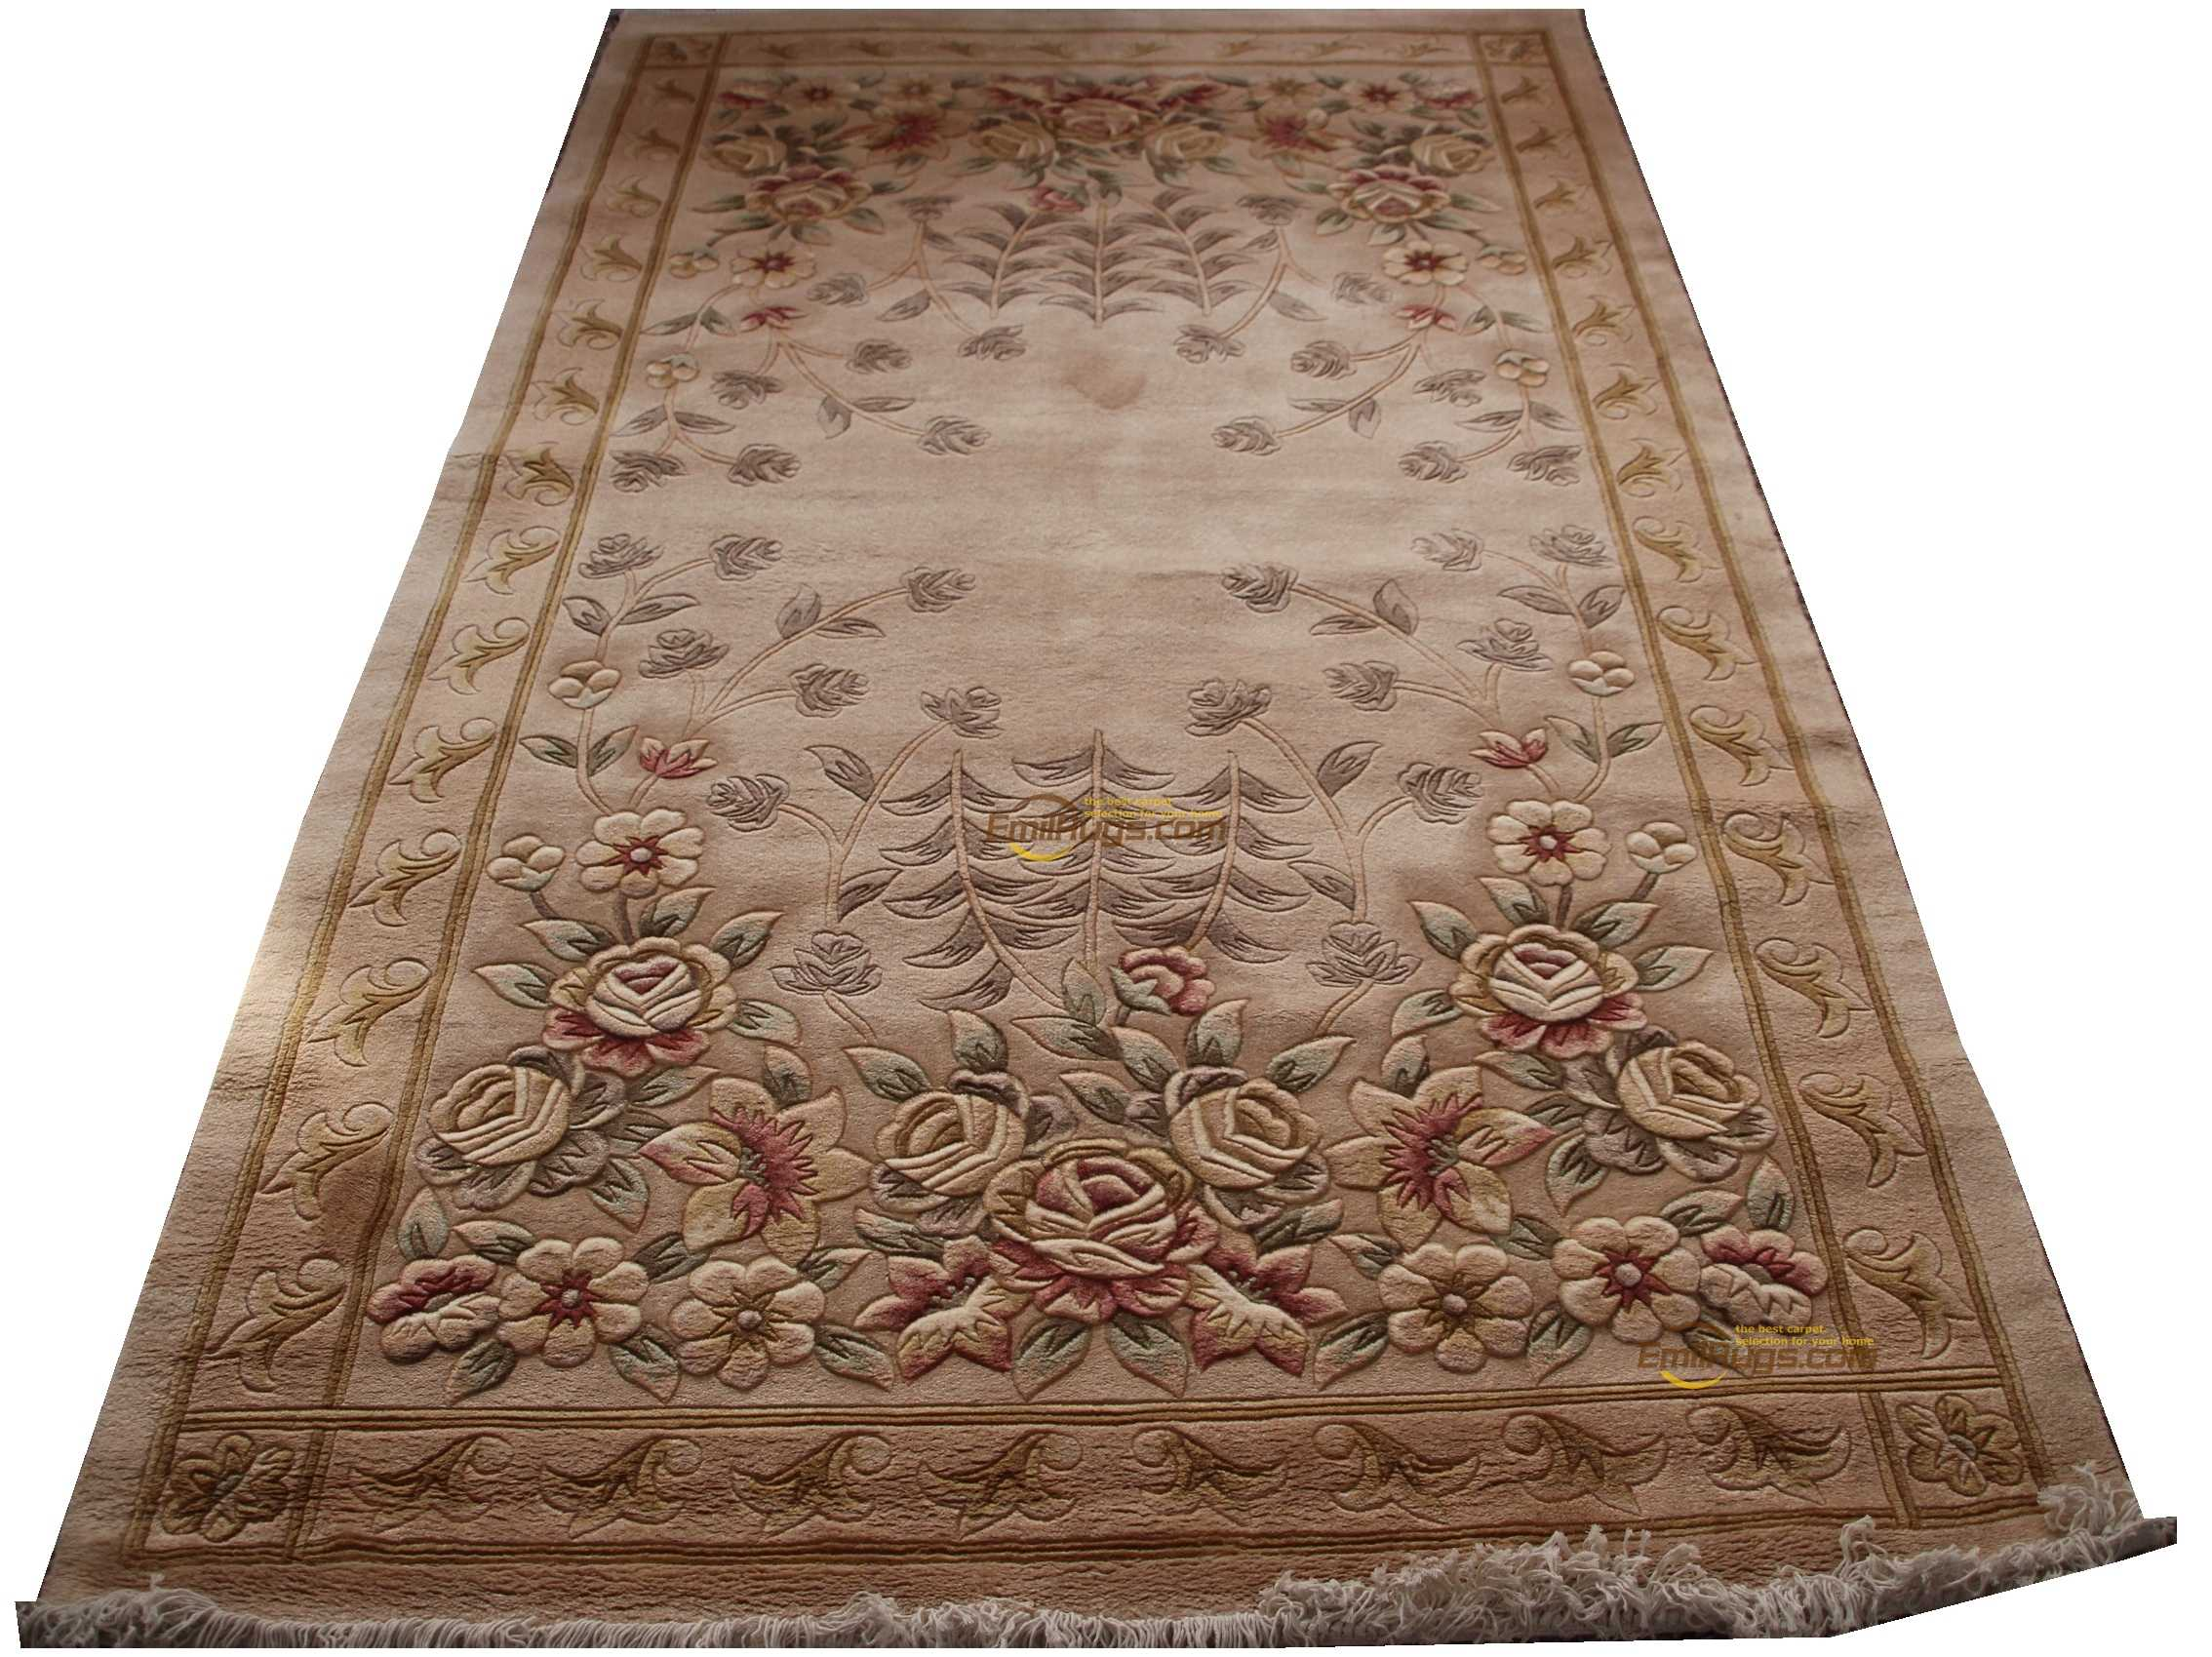 Big Carpet For Living Room Wool French Carpet About Machine Made Thick Plush Savonnerie Rug